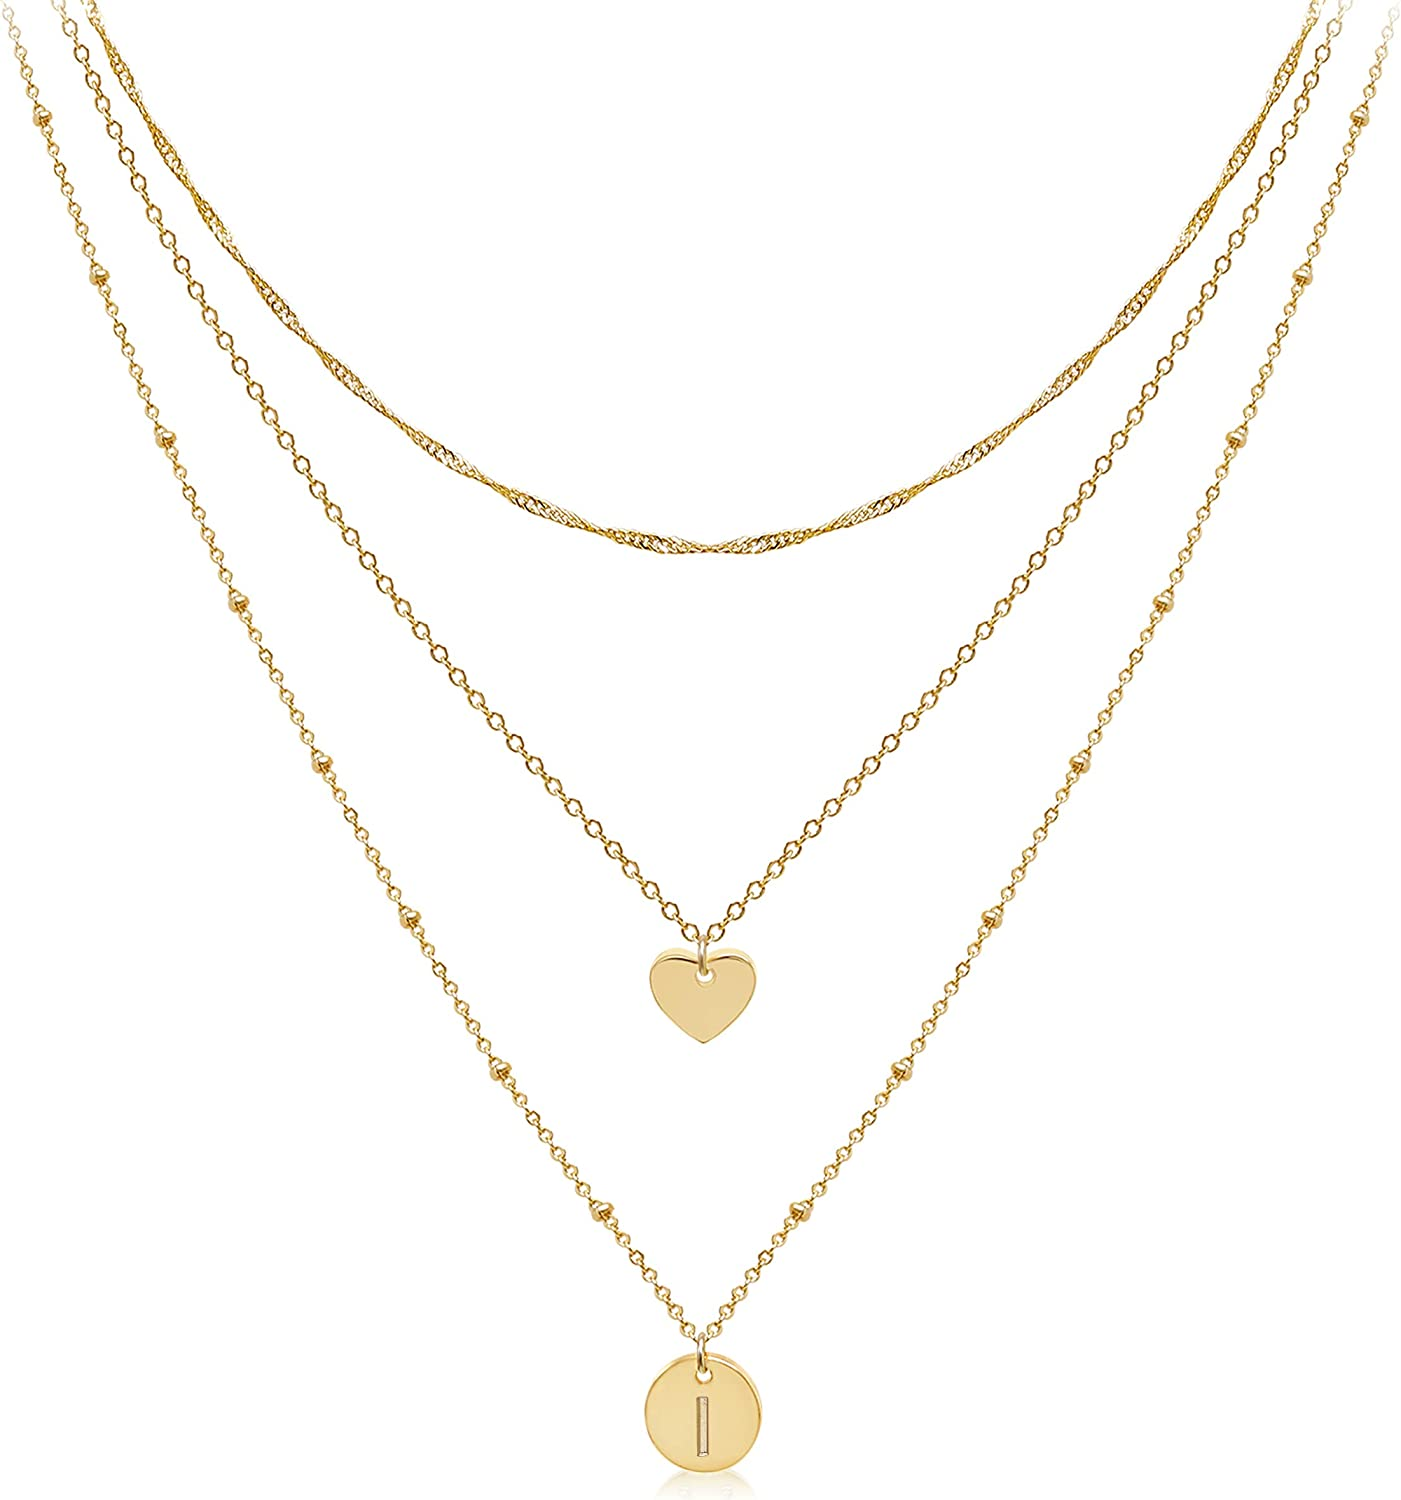 Aisansty Layered Gold Heart Initial Necklaces for Women Girls Handmade 14K Gold Plated Dainty Tiny Heart Personalized Letter Disc Coin Pendant Adjustable Layering Chain Choker Necklaces Gift for Her